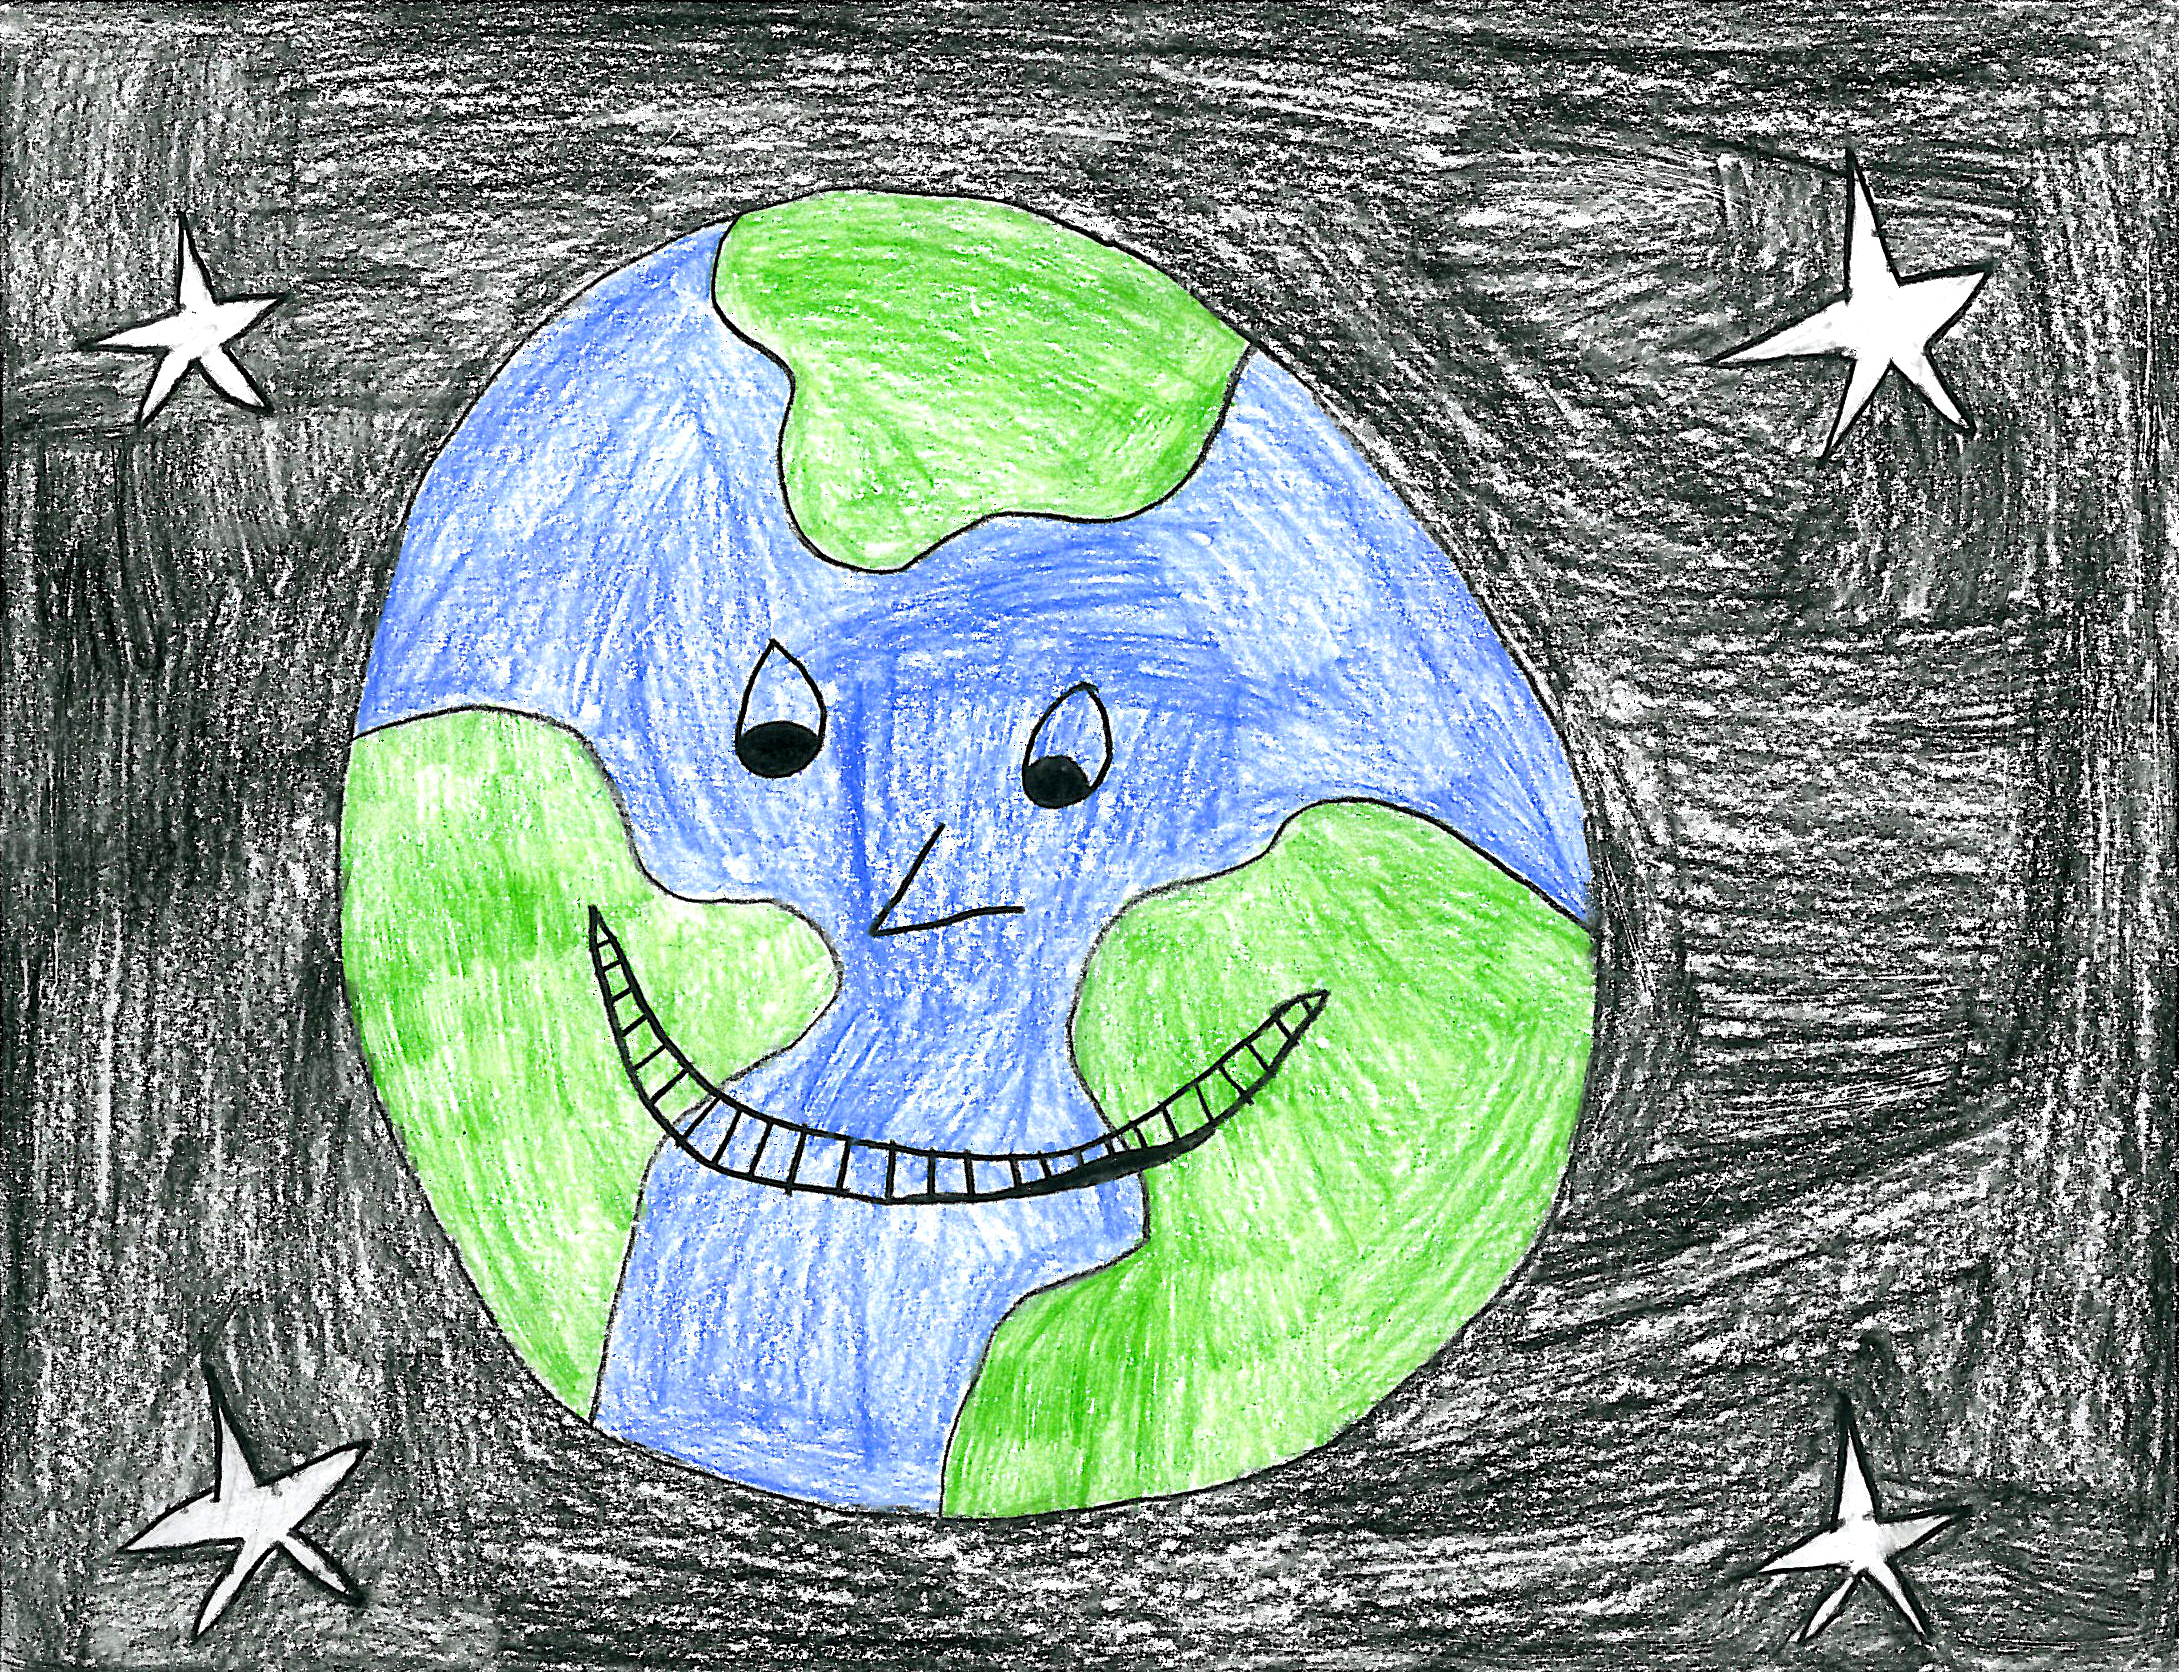 omnitrans kid drawings Archives - Omnitrans News